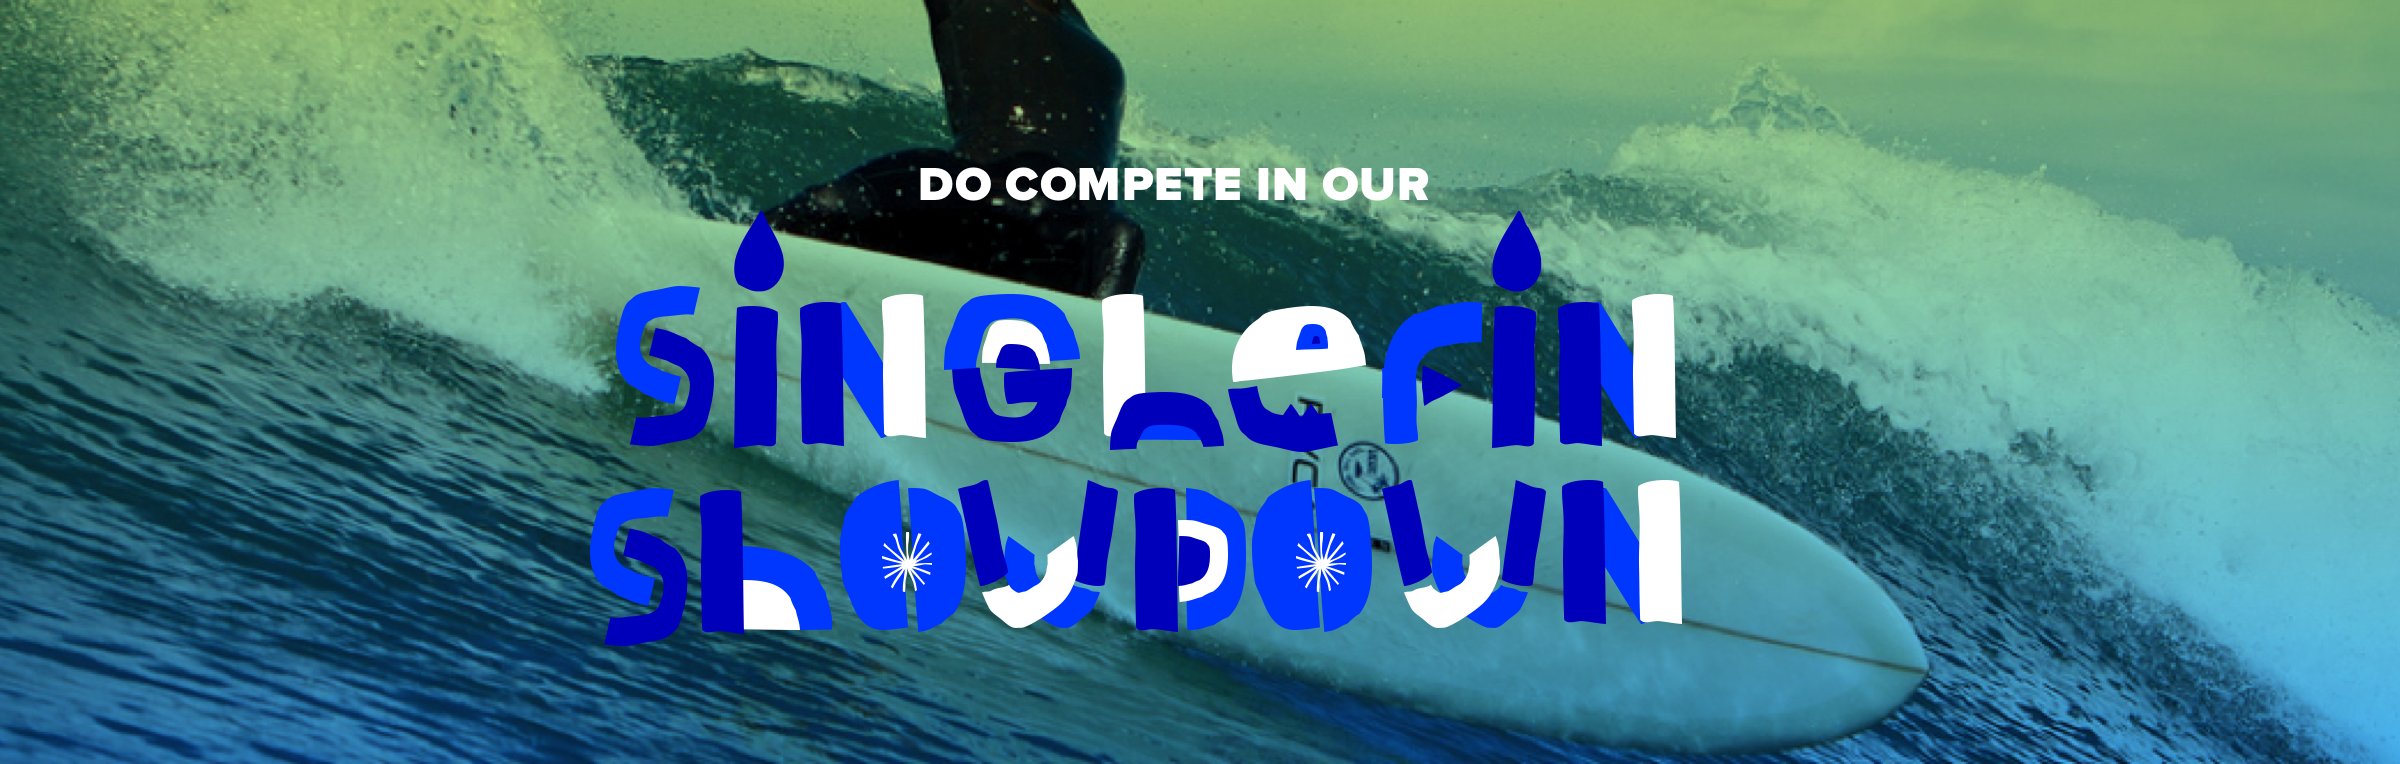 BRING OUR BUY A NEW OR OLD SINGLEFIN AND COMPETE IN OUR OFFICIAL BUT UNOFFICIAL WORLDCHAMPIONSHIPS OF SINGLEFIN SURFING.